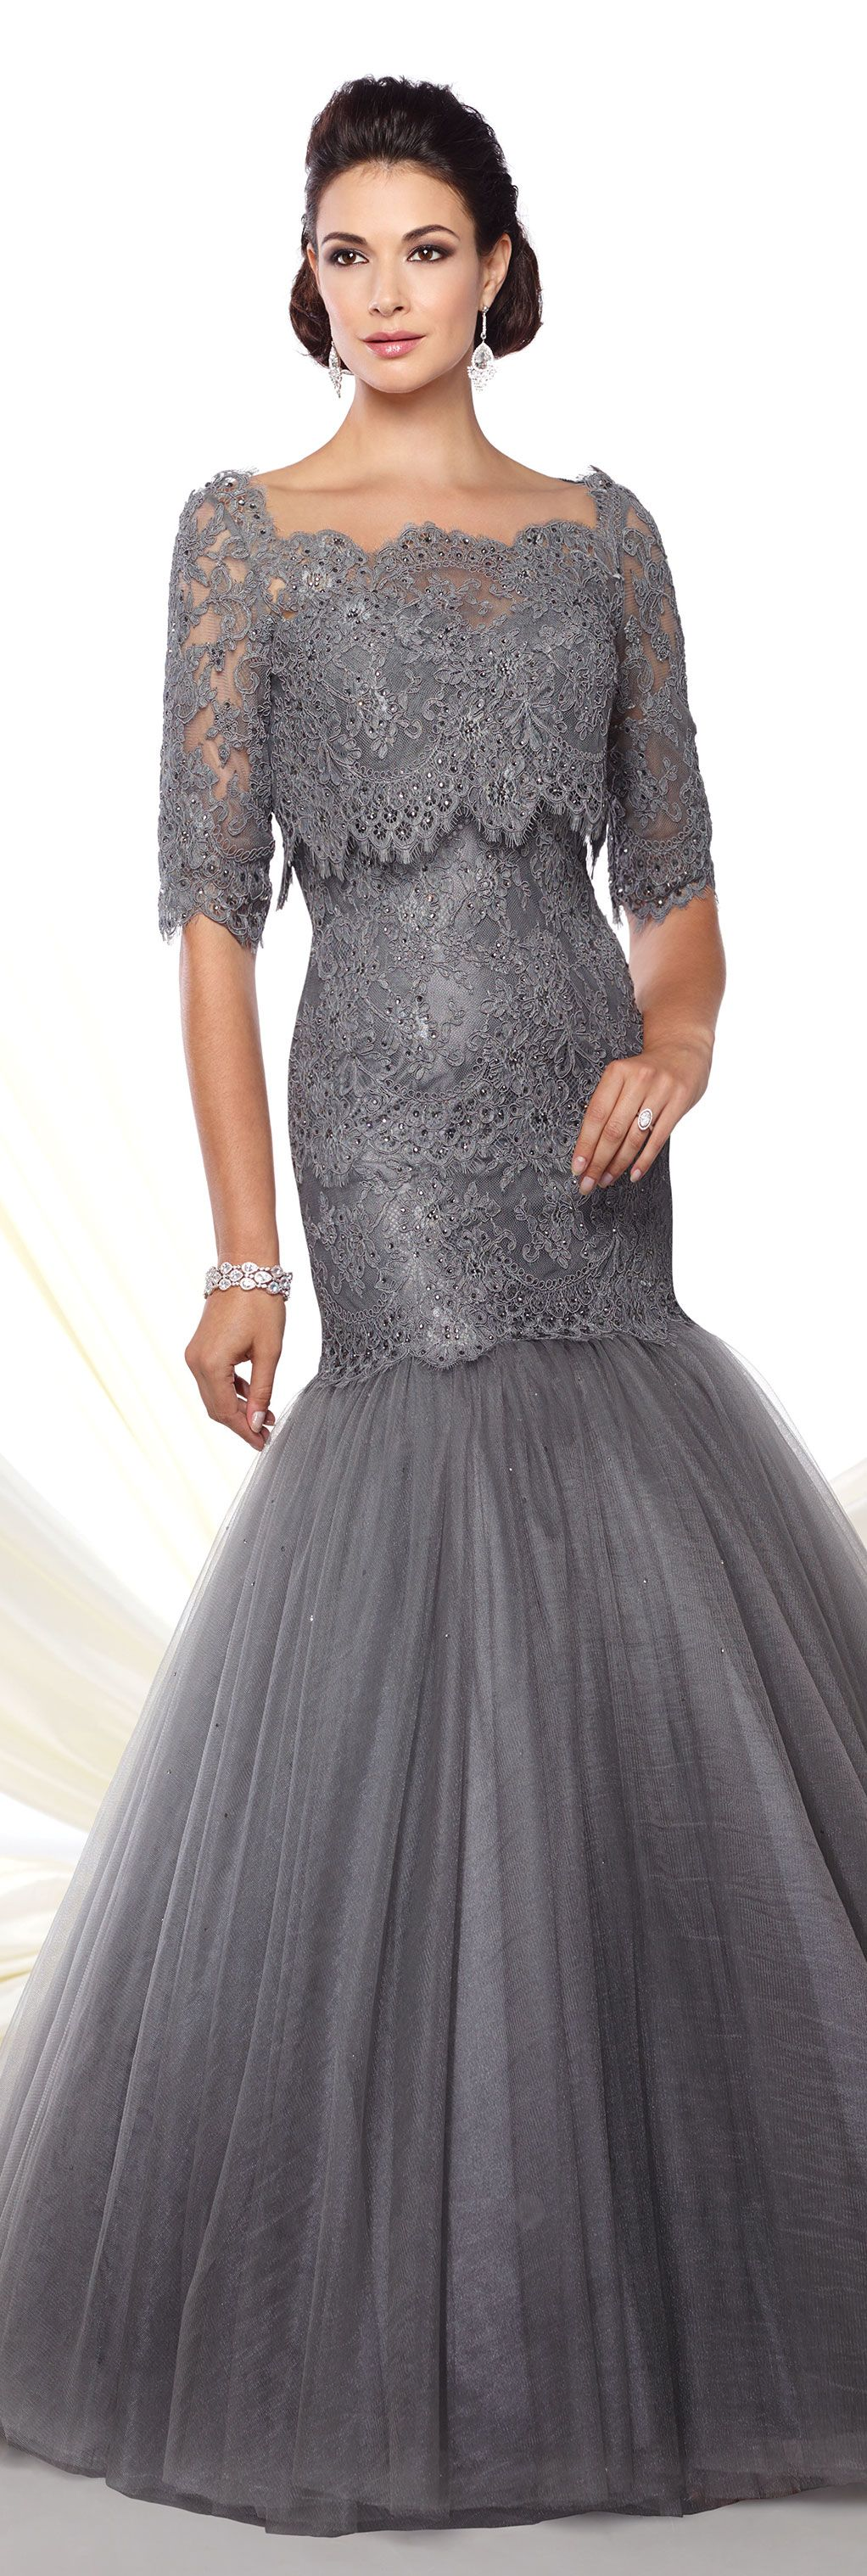 Couture ivonne d mother of the bride dresses for mon cheri